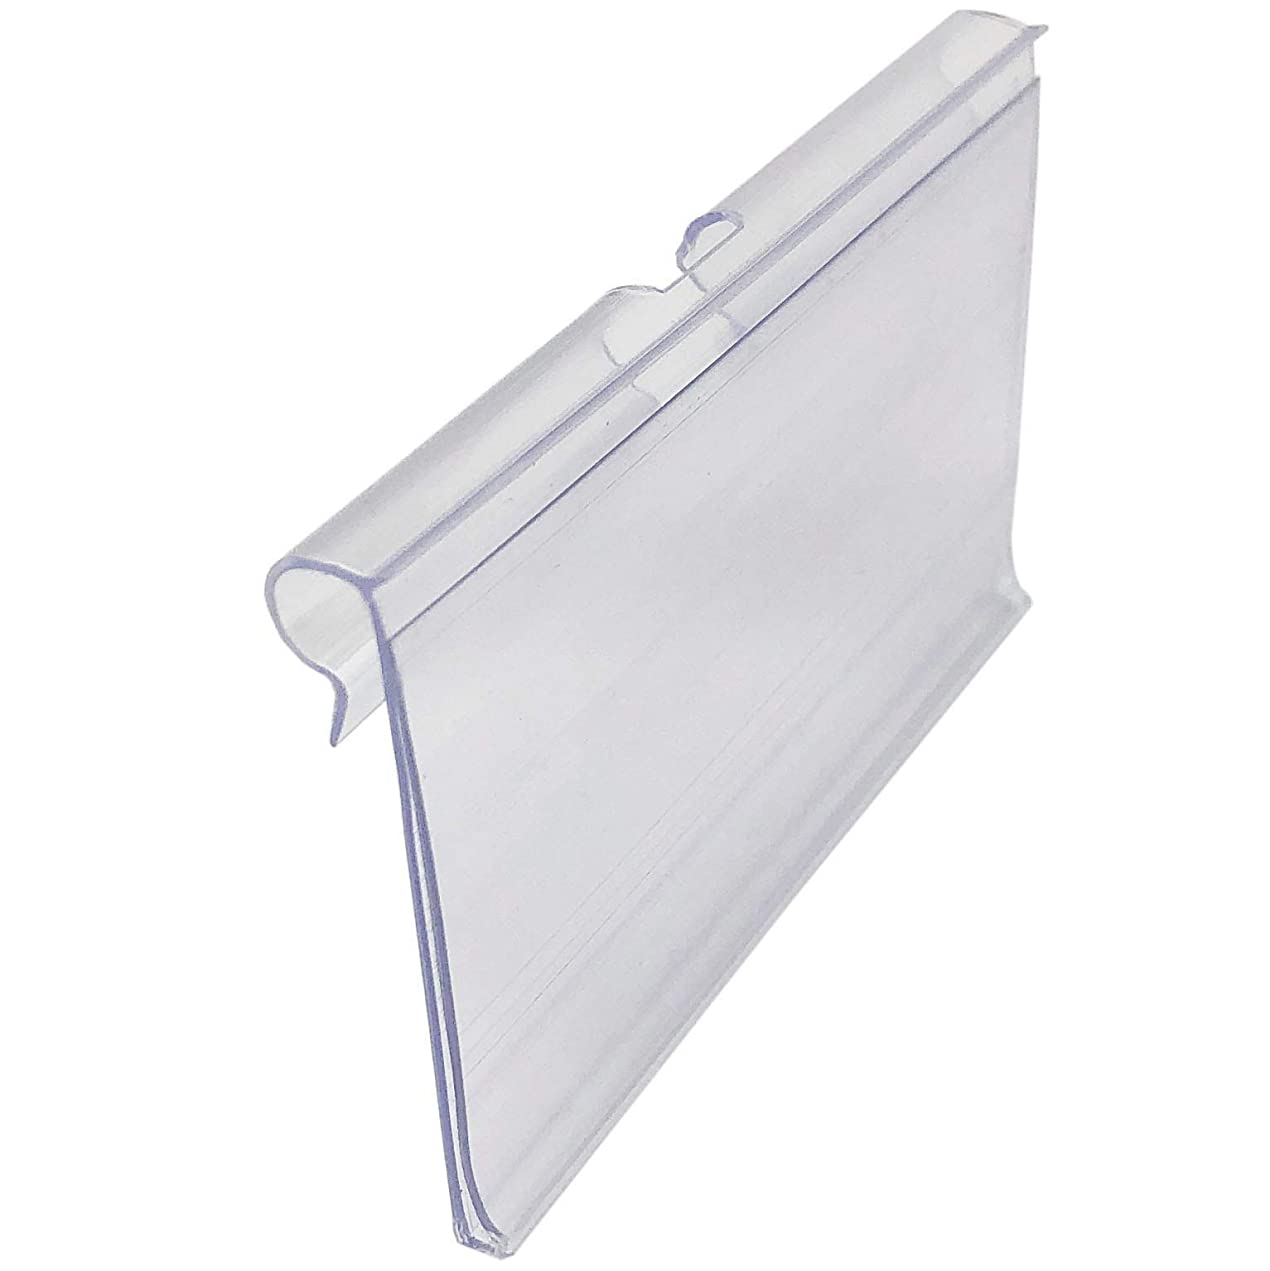 Rusoji 80 Pcs Clear Plastic Wire Shelf Price Label Sign Clip Holder, Clip-On Display Labels Holders for Retail Merchandise Sign Display